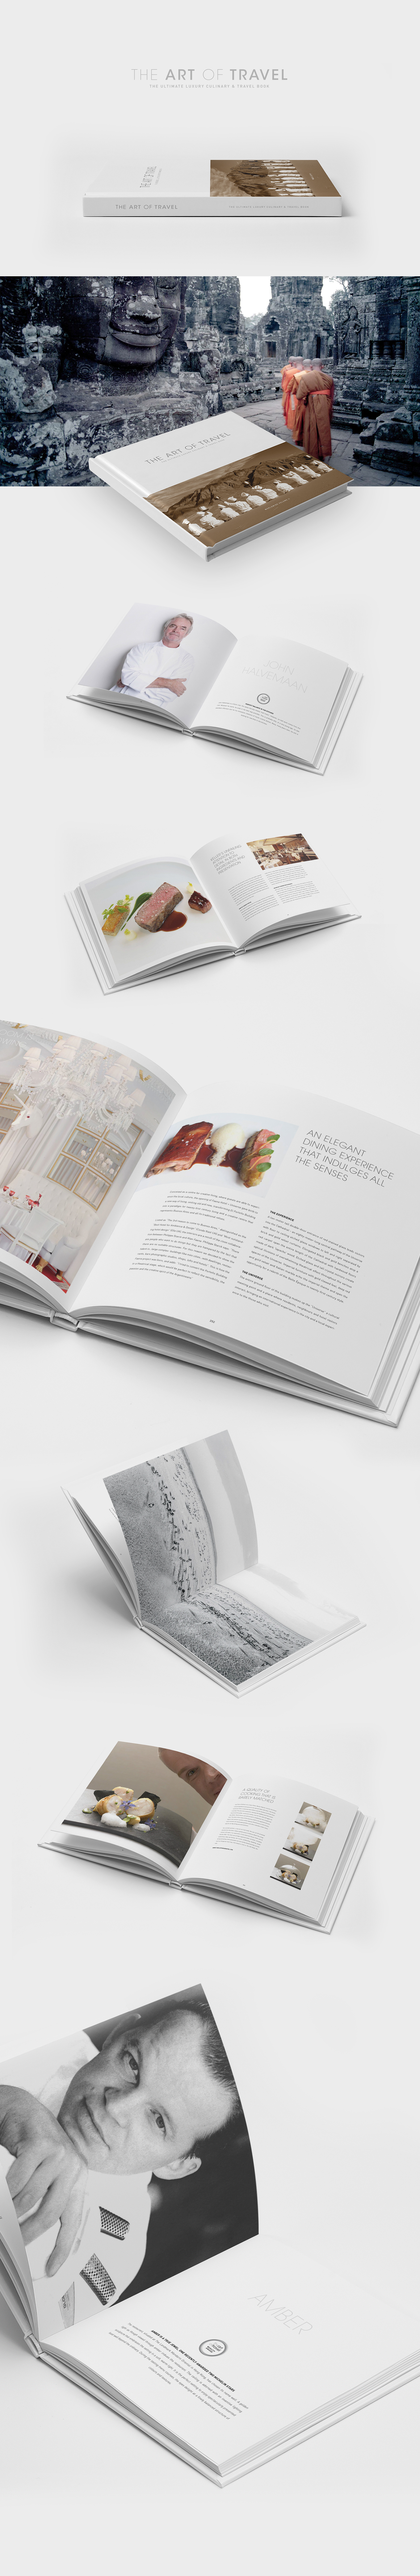 book art Travel Food  Culinary luxury graphic